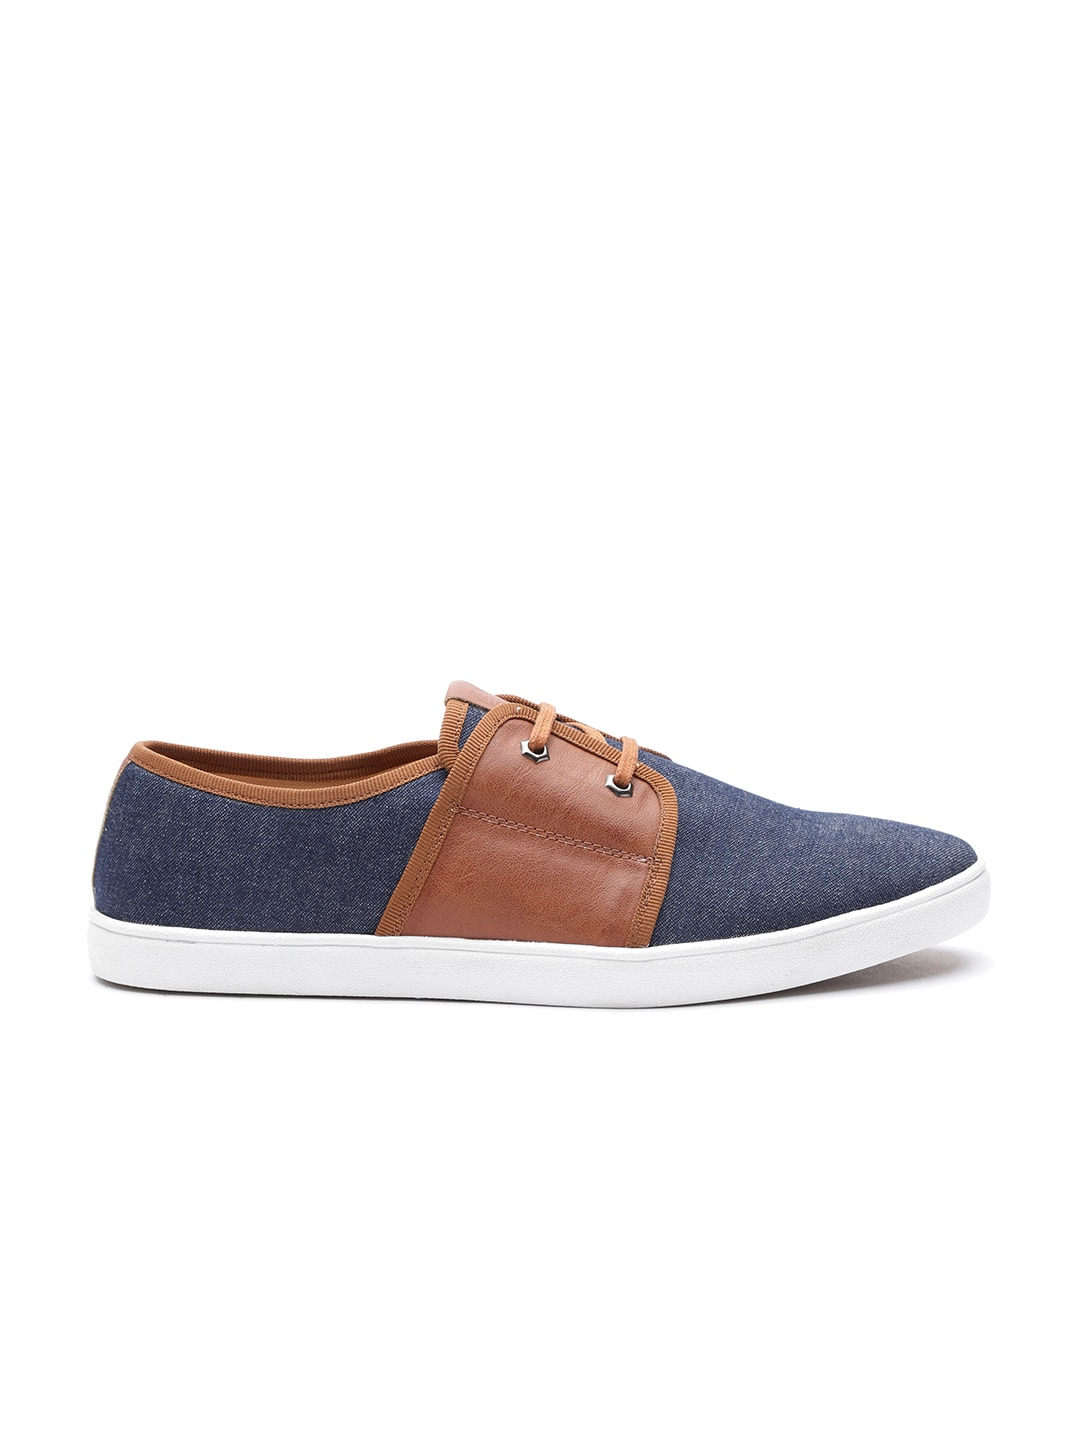 99e593cc752f Shoes for Men - Buy Mens Shoes Online at Best Price